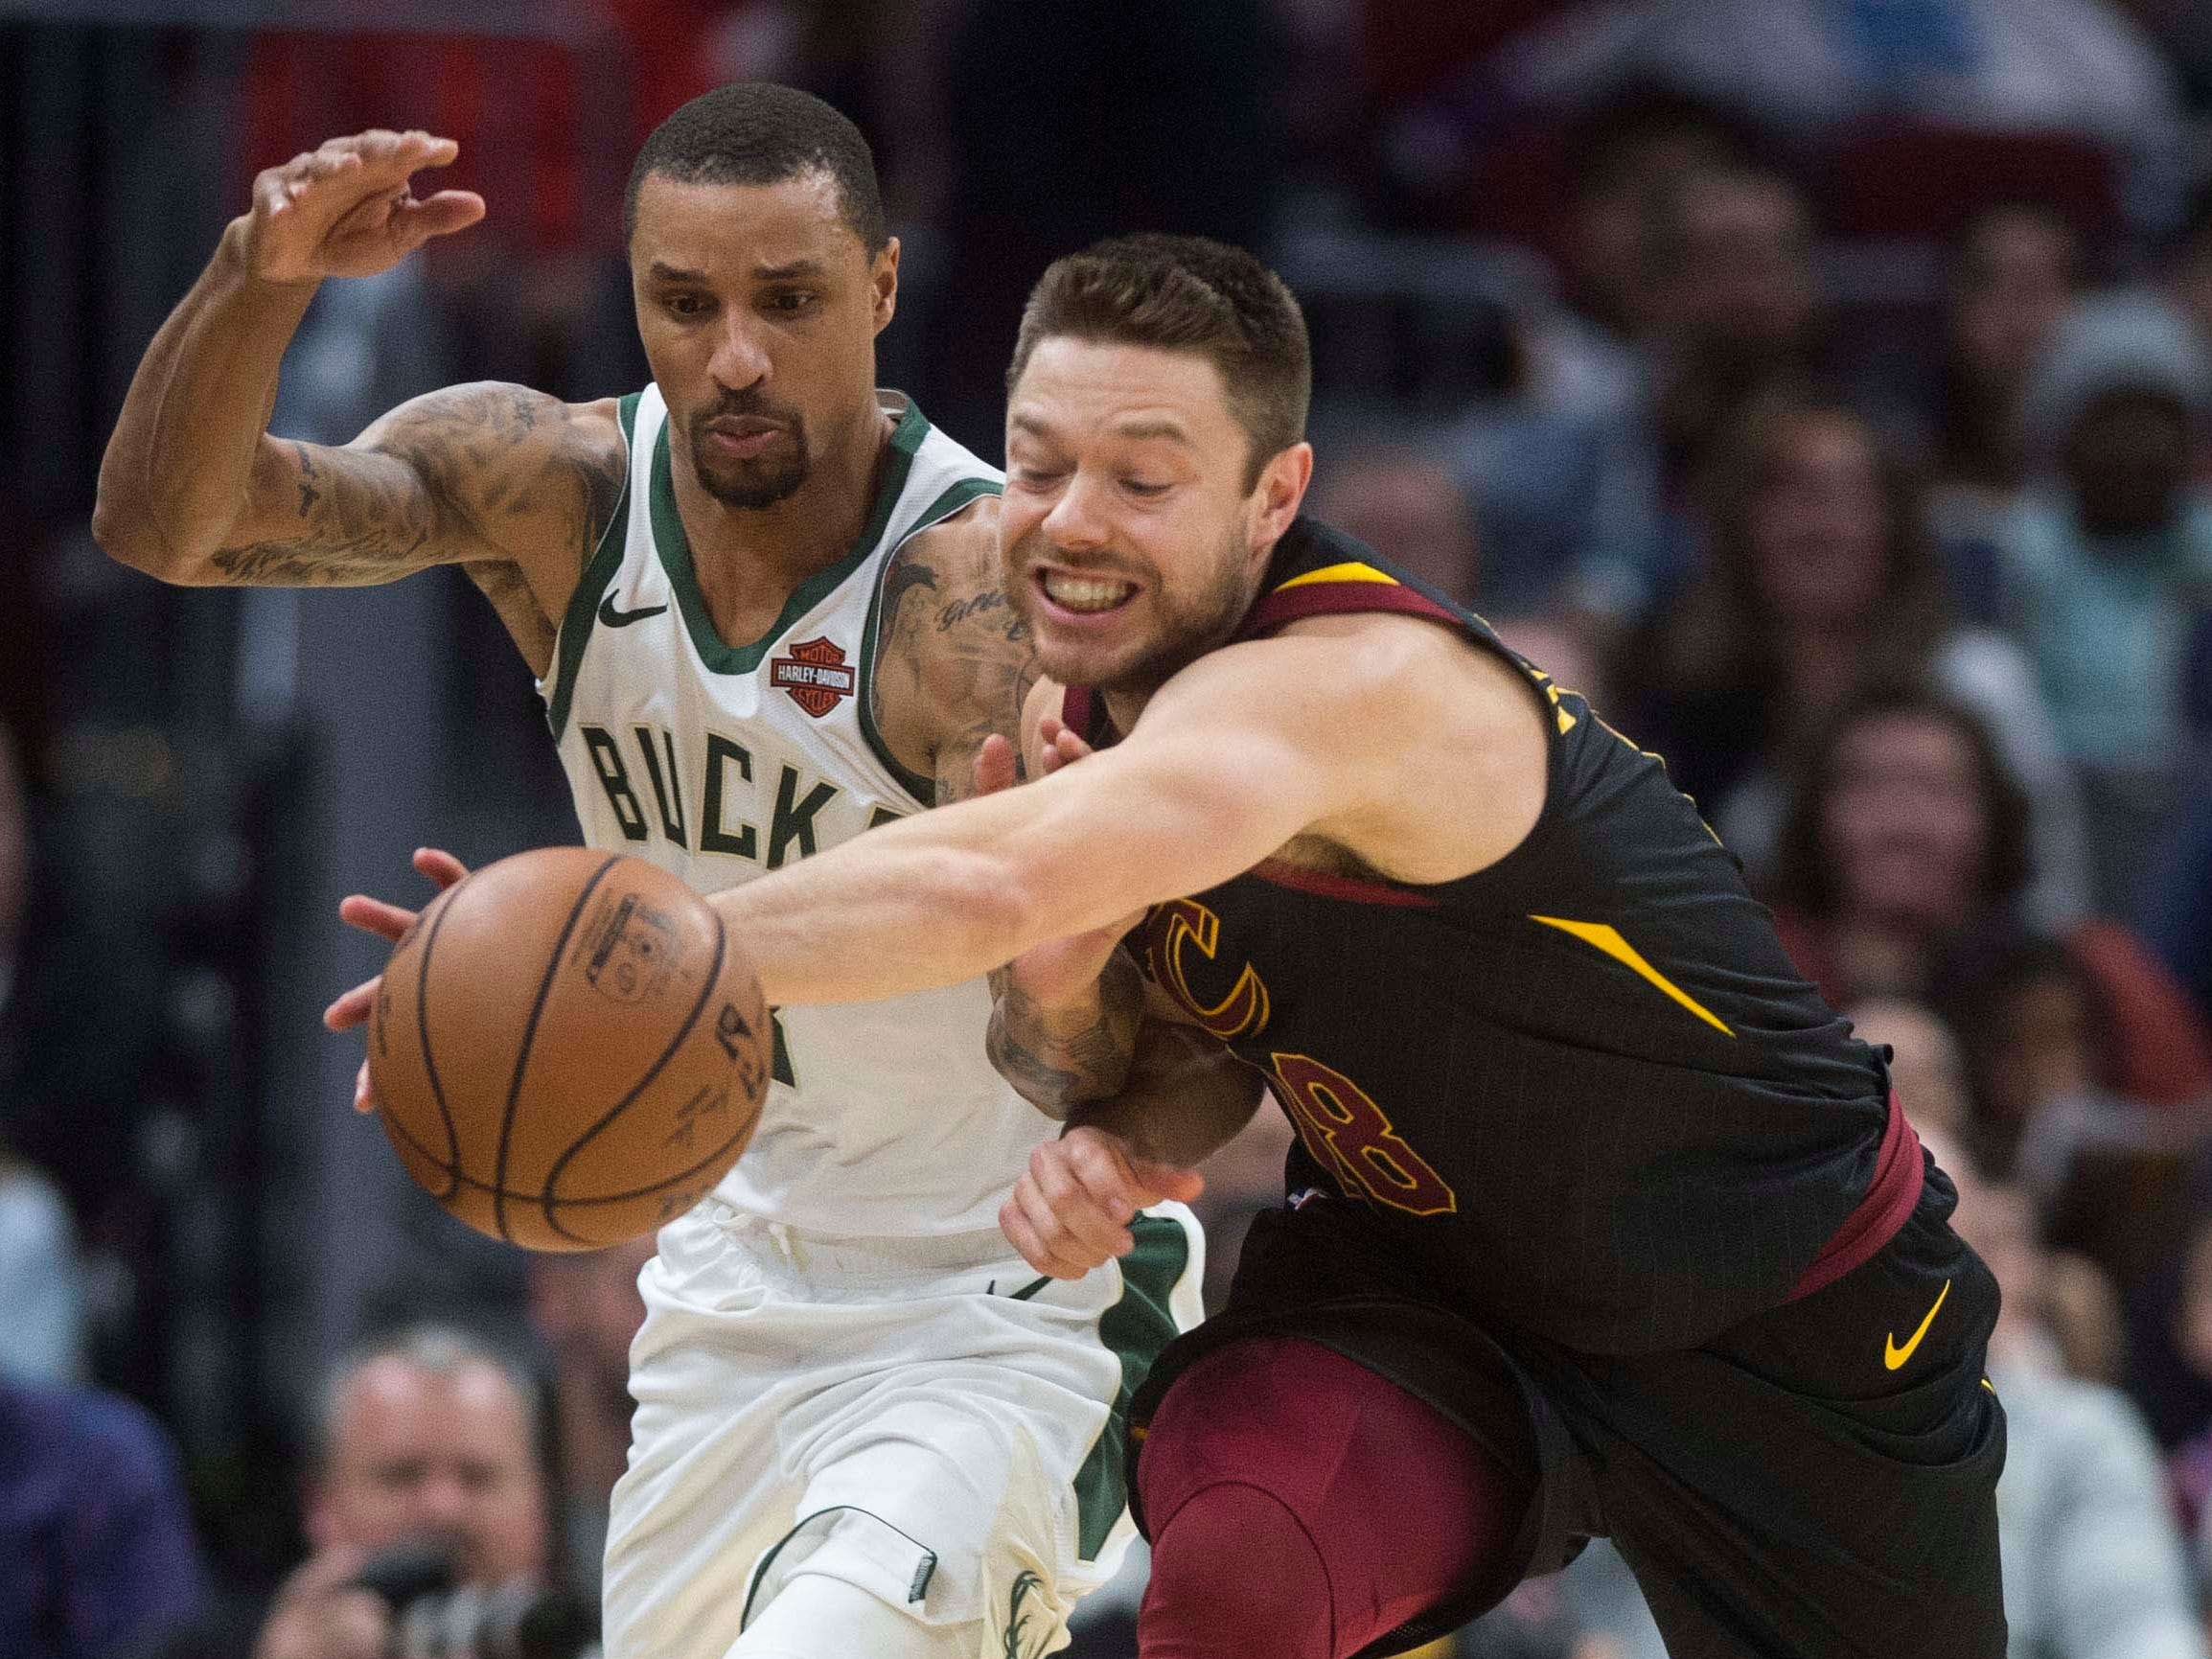 Bucks guard George Hill and Cleveland Cavaliers guard Matthew Dellavedova fight for a loose ball.